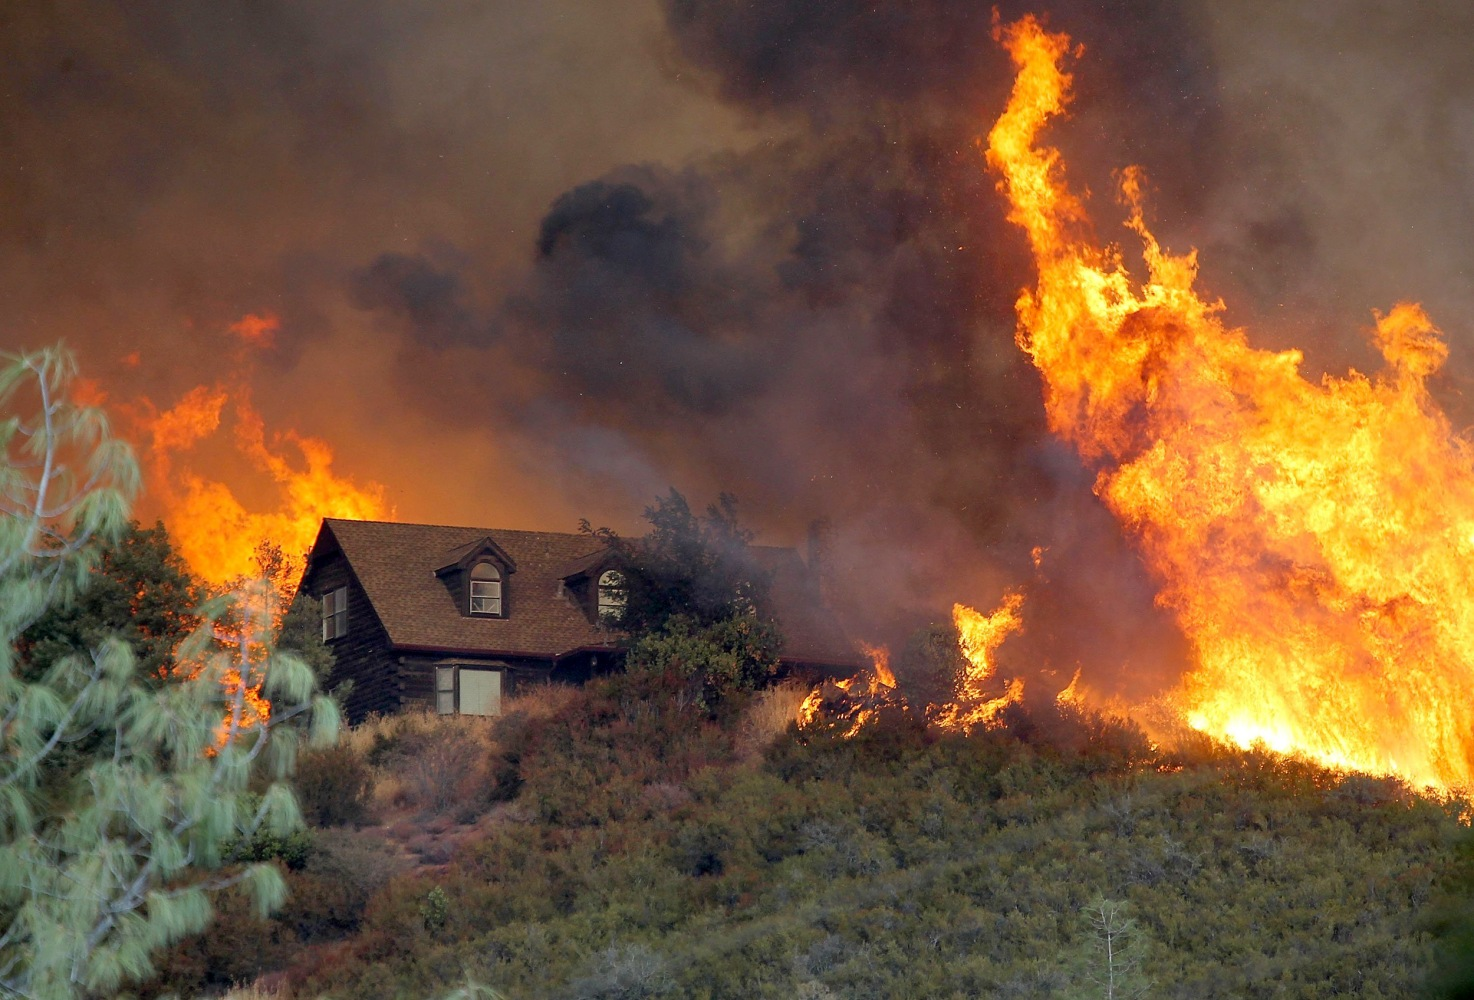 bush fires in california essay The blue cut fire began in cajon pass in southern california as a small brush  fire at 10:36am on august 16 and immediately escalated into a.